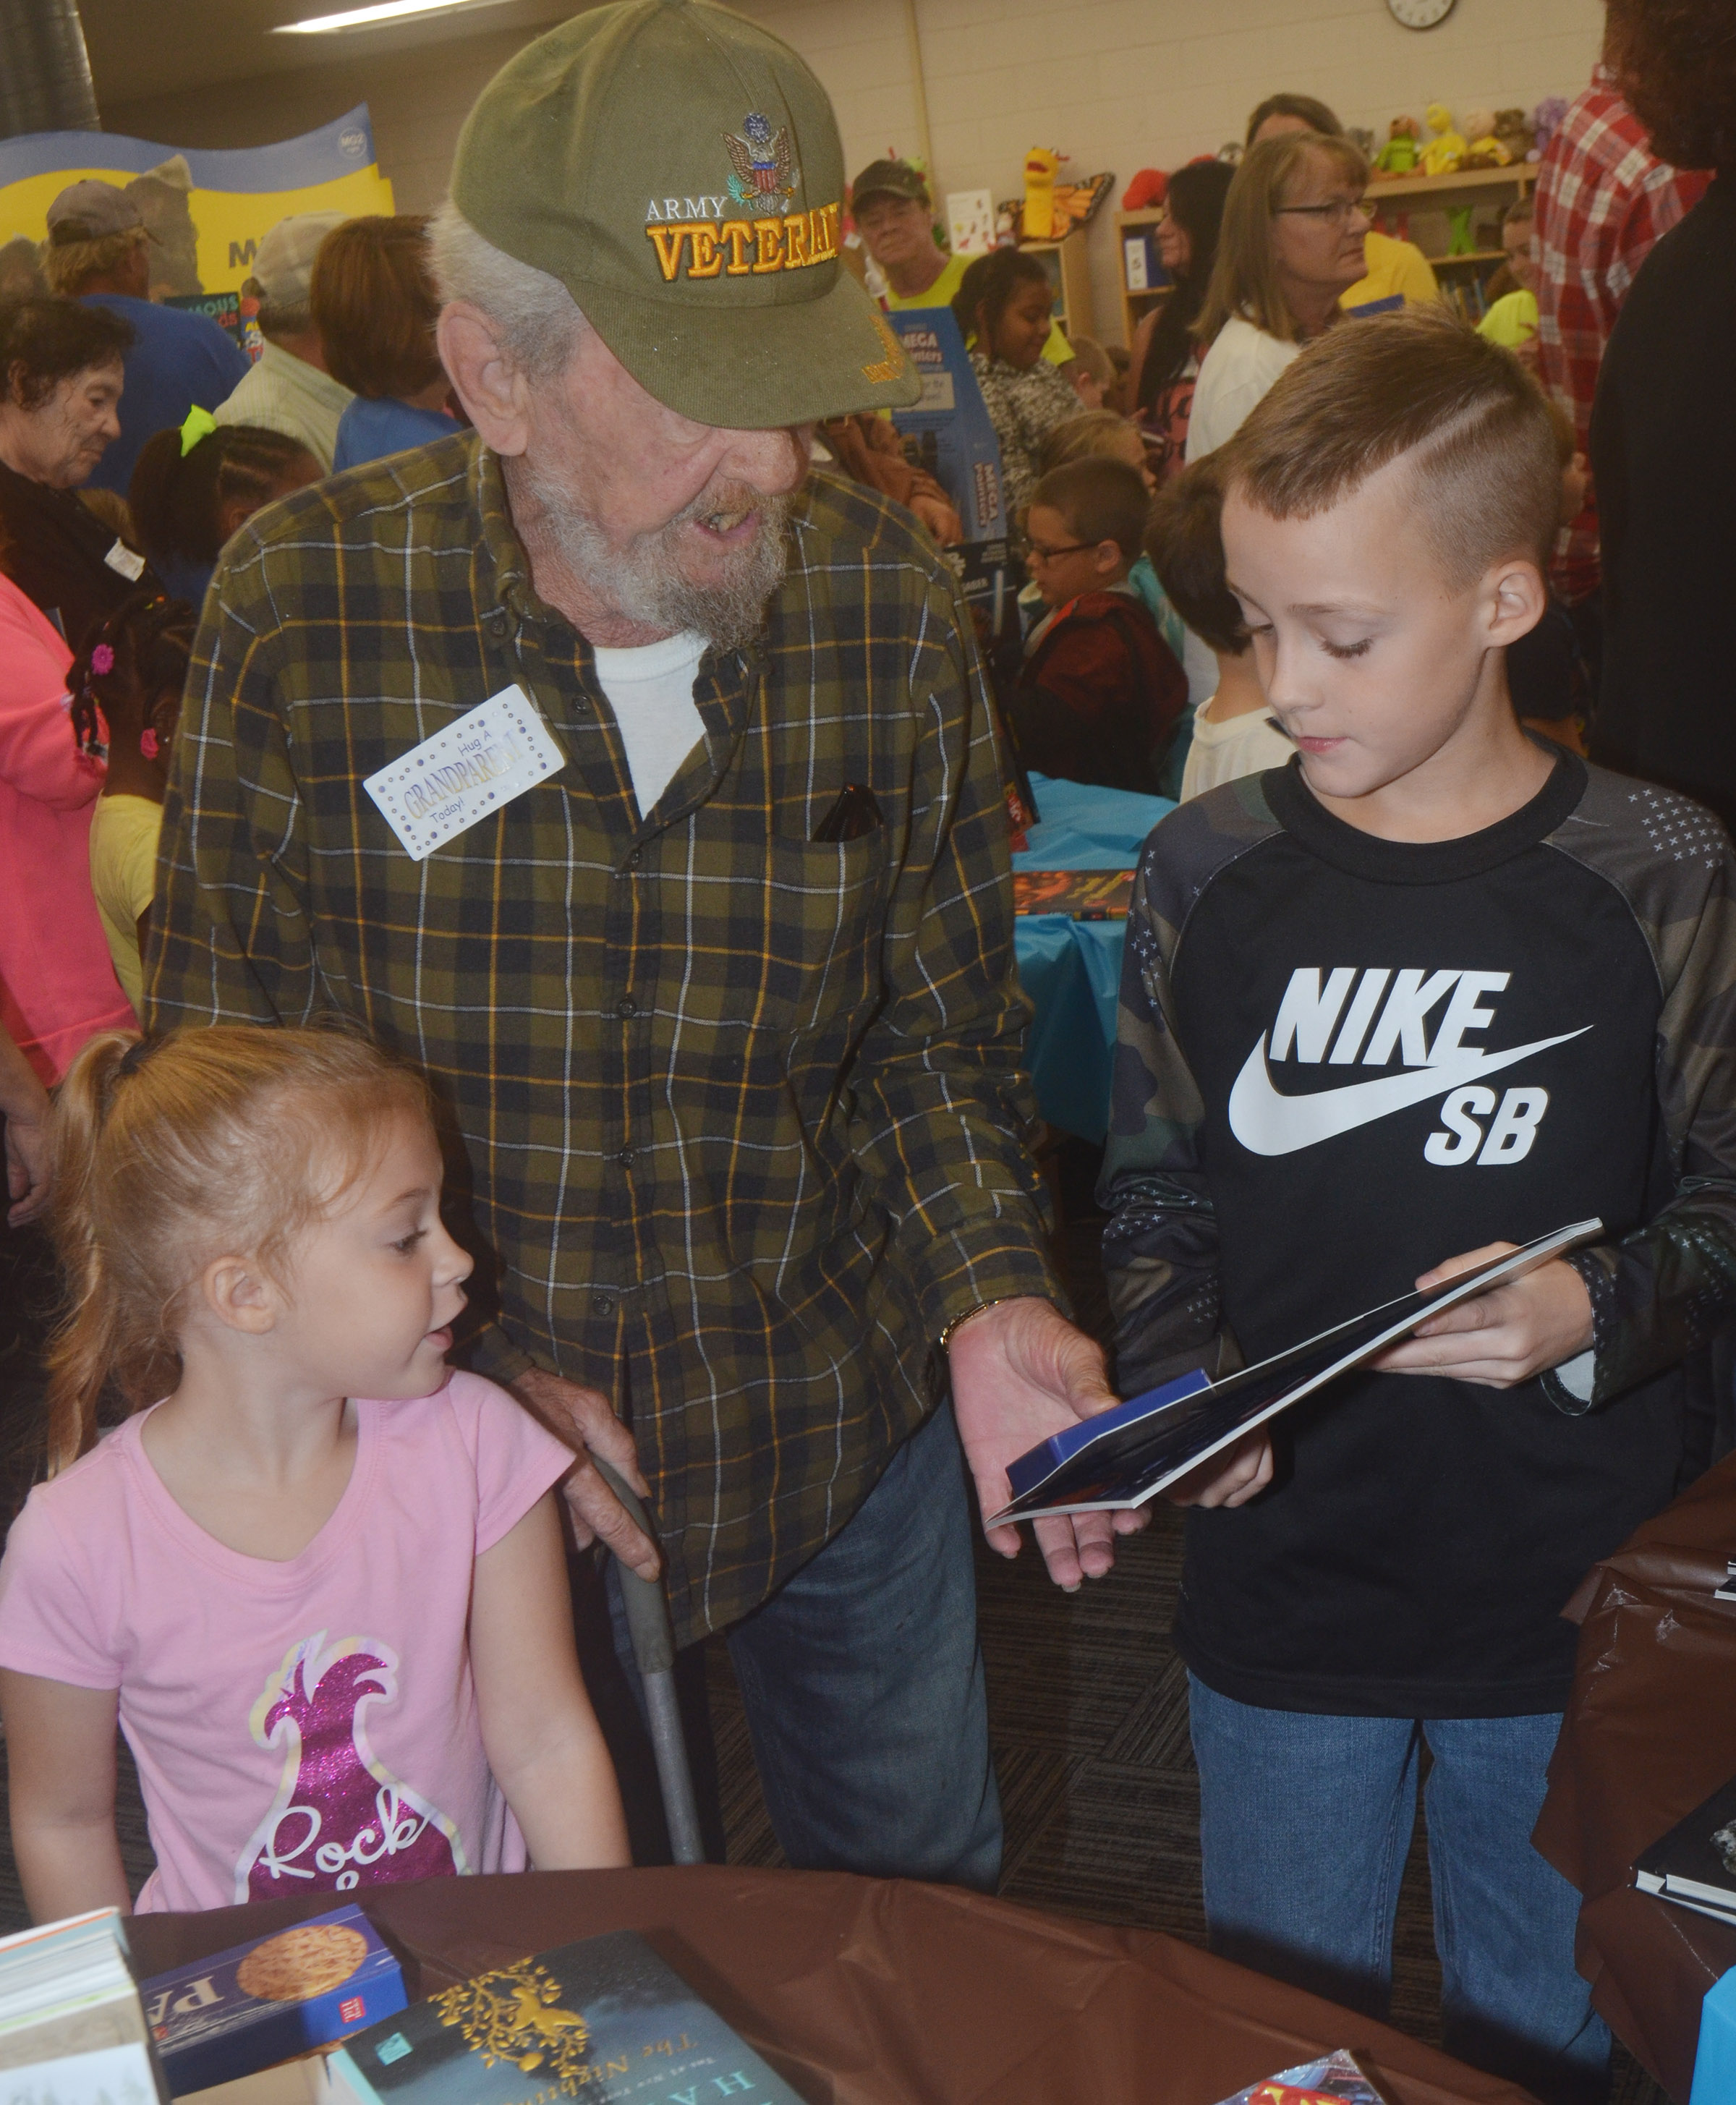 CES fourth-grader Caysen Tungate looks at a book with his grandfather and kindergartener Ava Caffee.